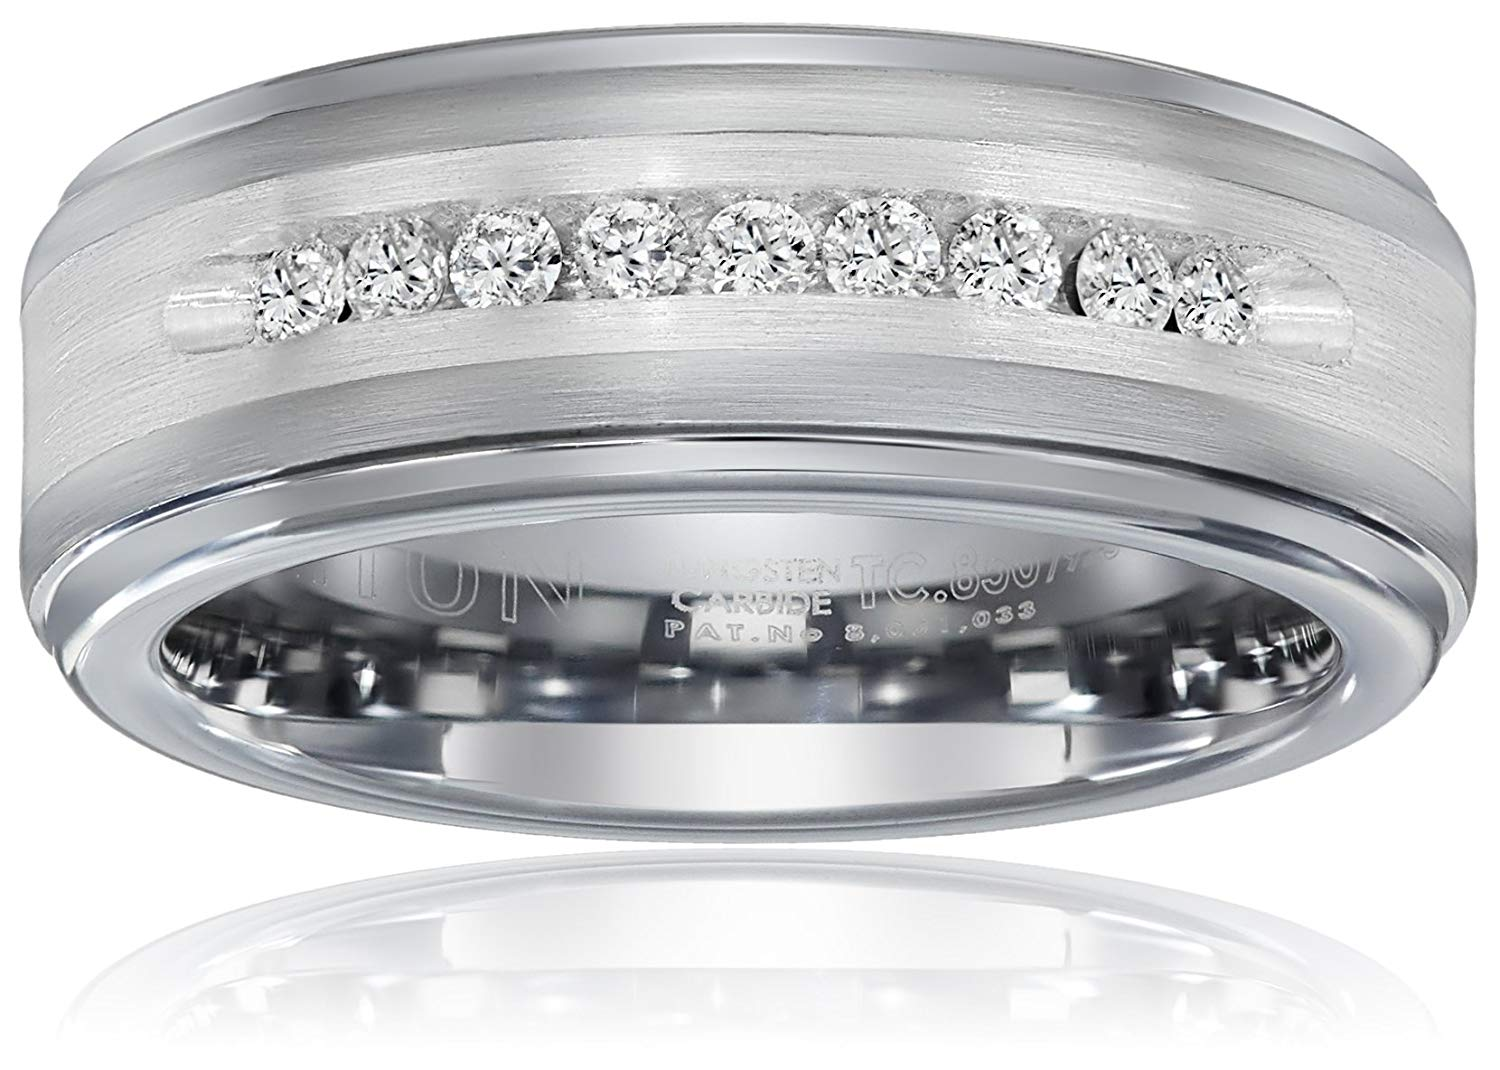 Triton Men's Tungsten and Silver 8mm Comfort-Fit Diamond Wedding Band (1/4cttw, I-J Color)